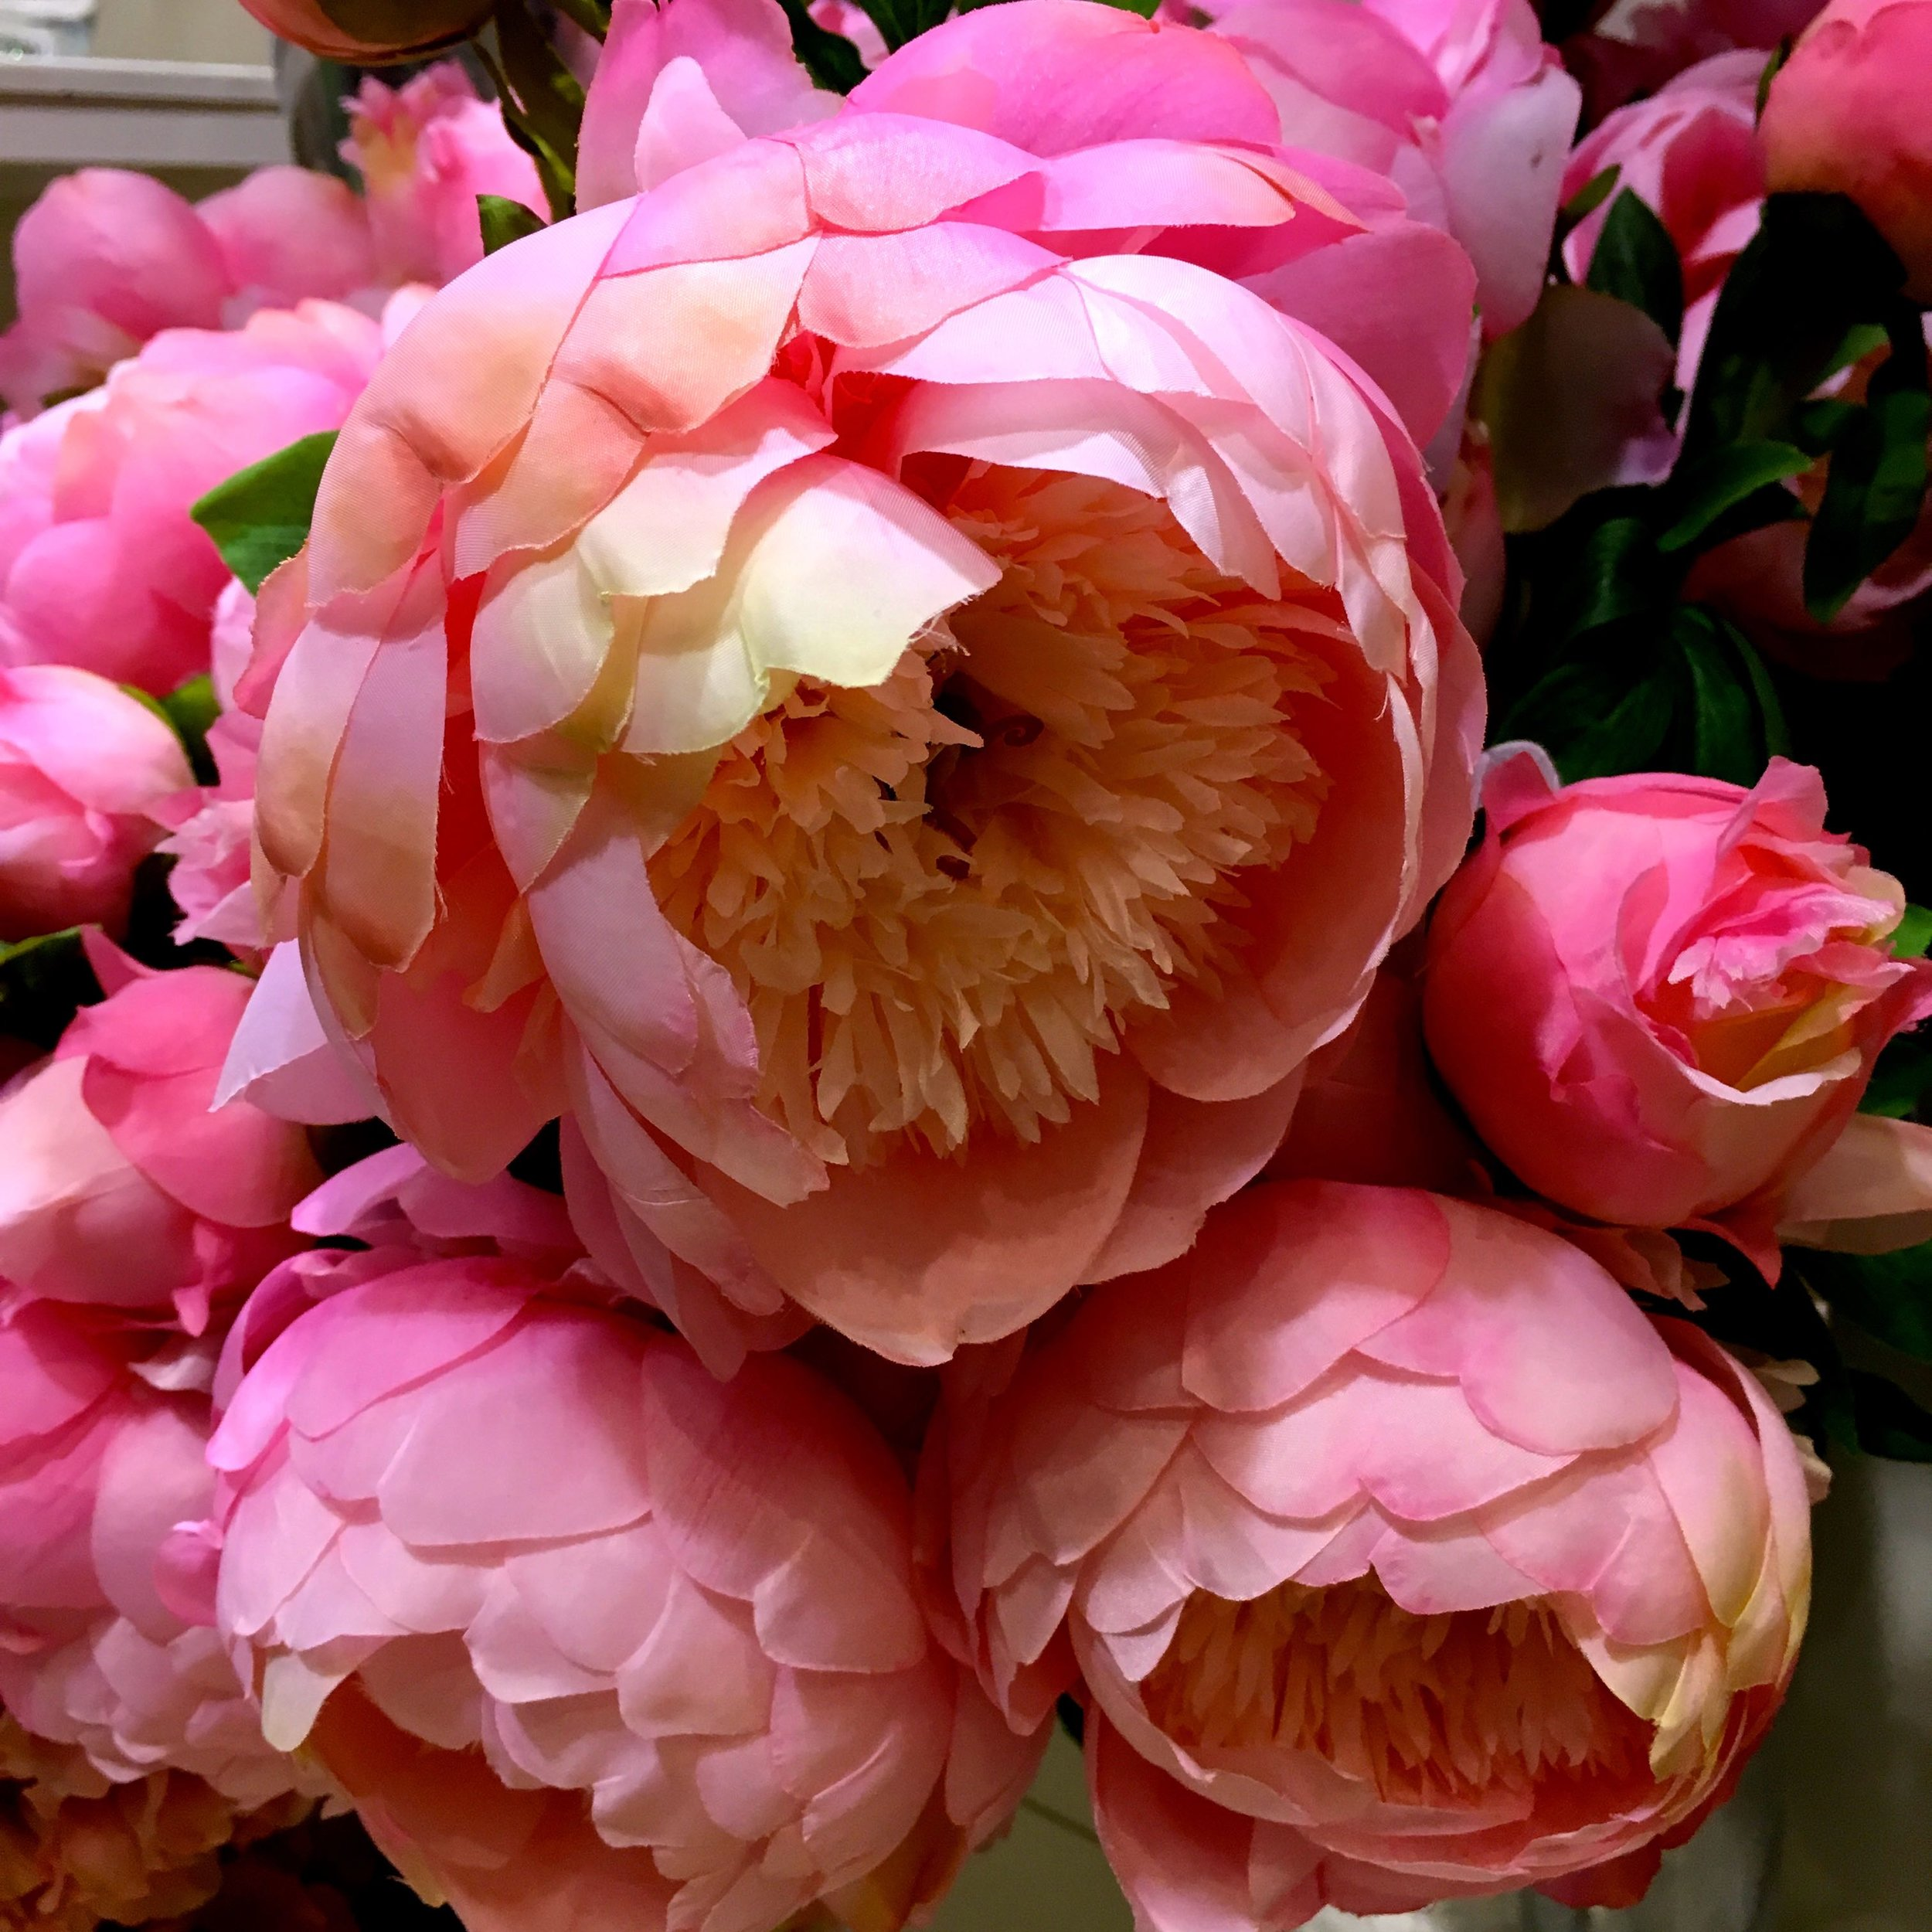 Faux peonies that brought back instant memories of my wedding bouquet